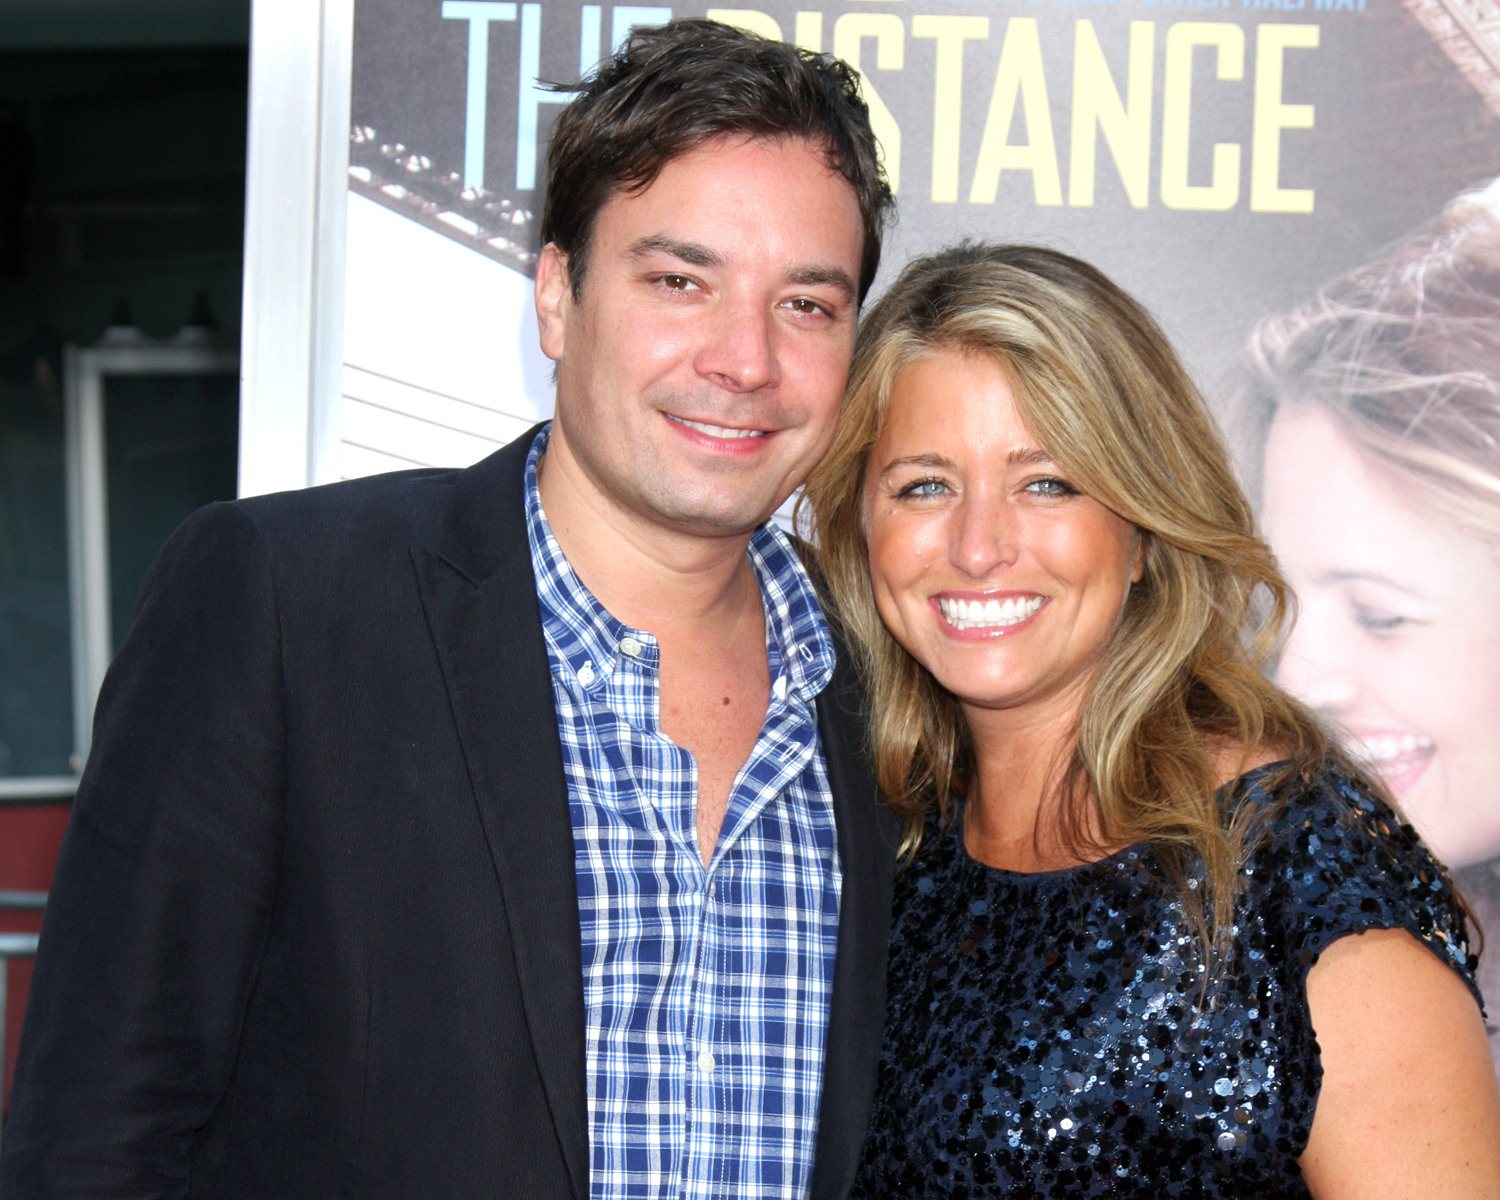 Jimmy Fallon Shares Wedding Photo On 10th Anniversary See